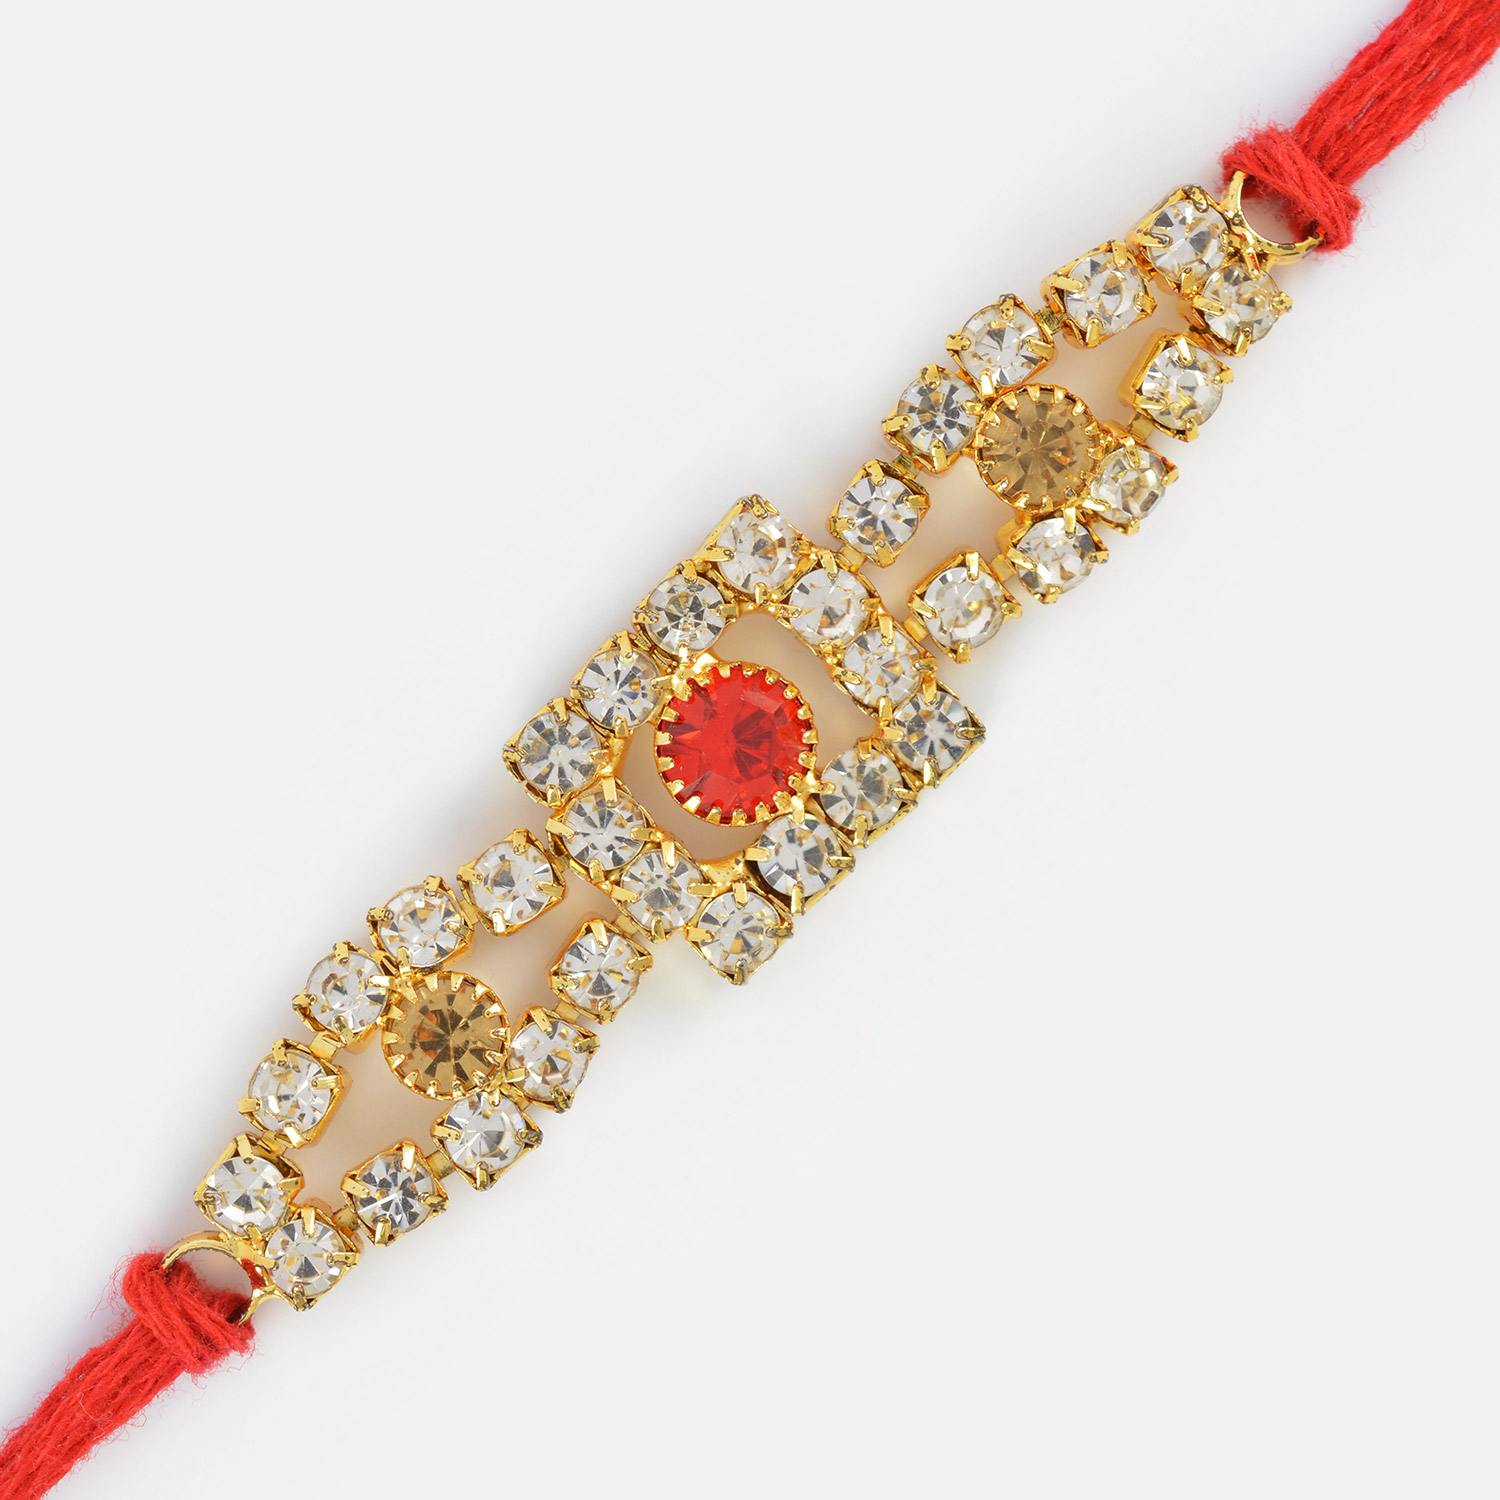 Excellent and Fancy Looking Jewel Rakhi